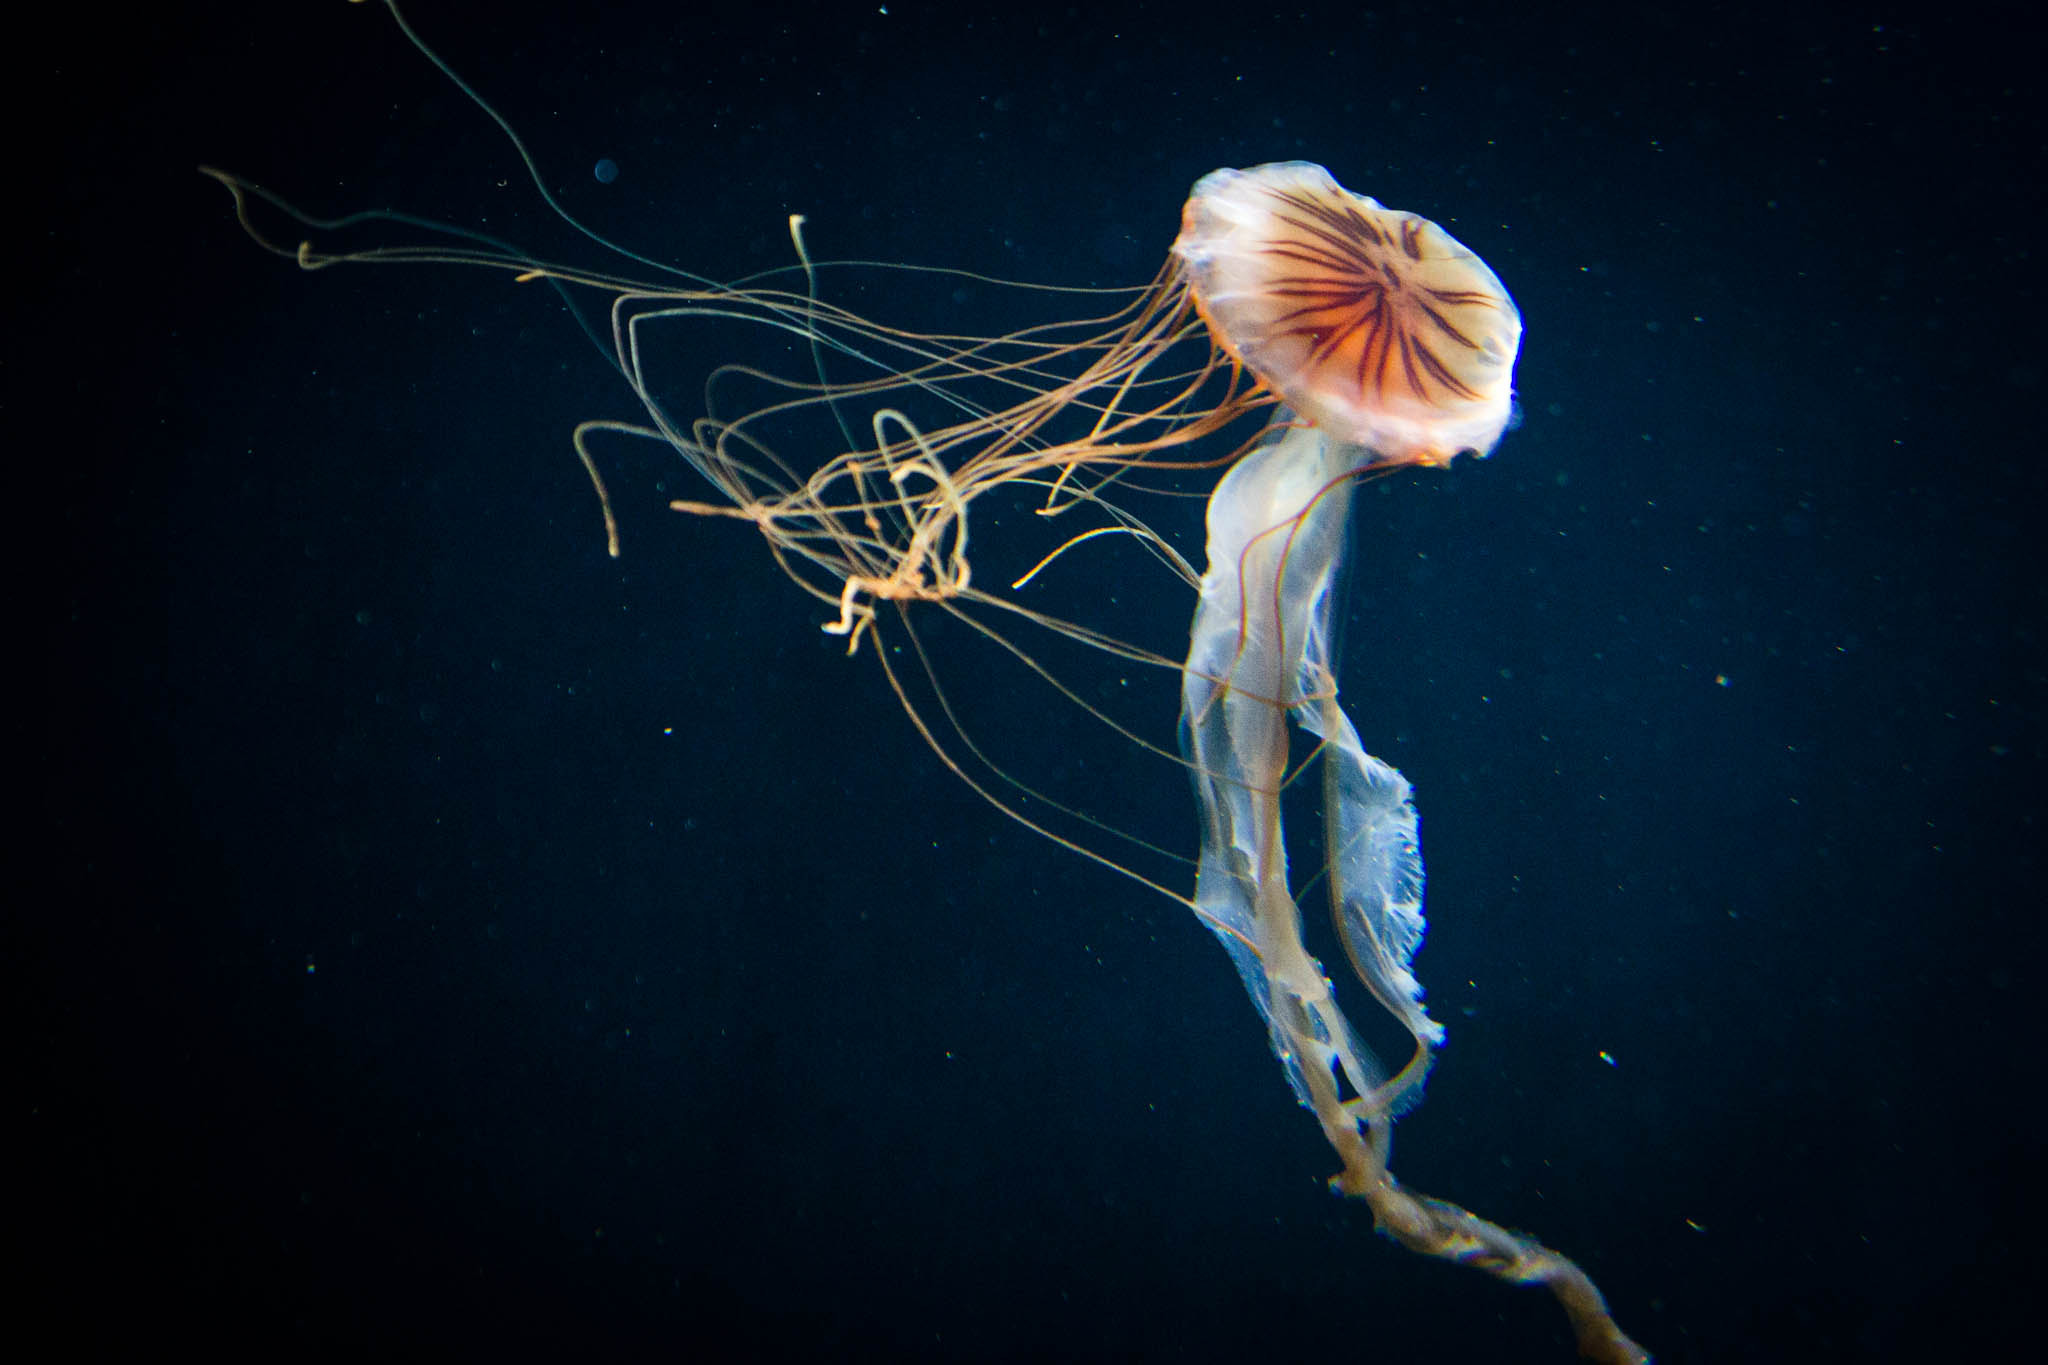 Photograph JELLYFISH by NOAM YOFFE on 500px